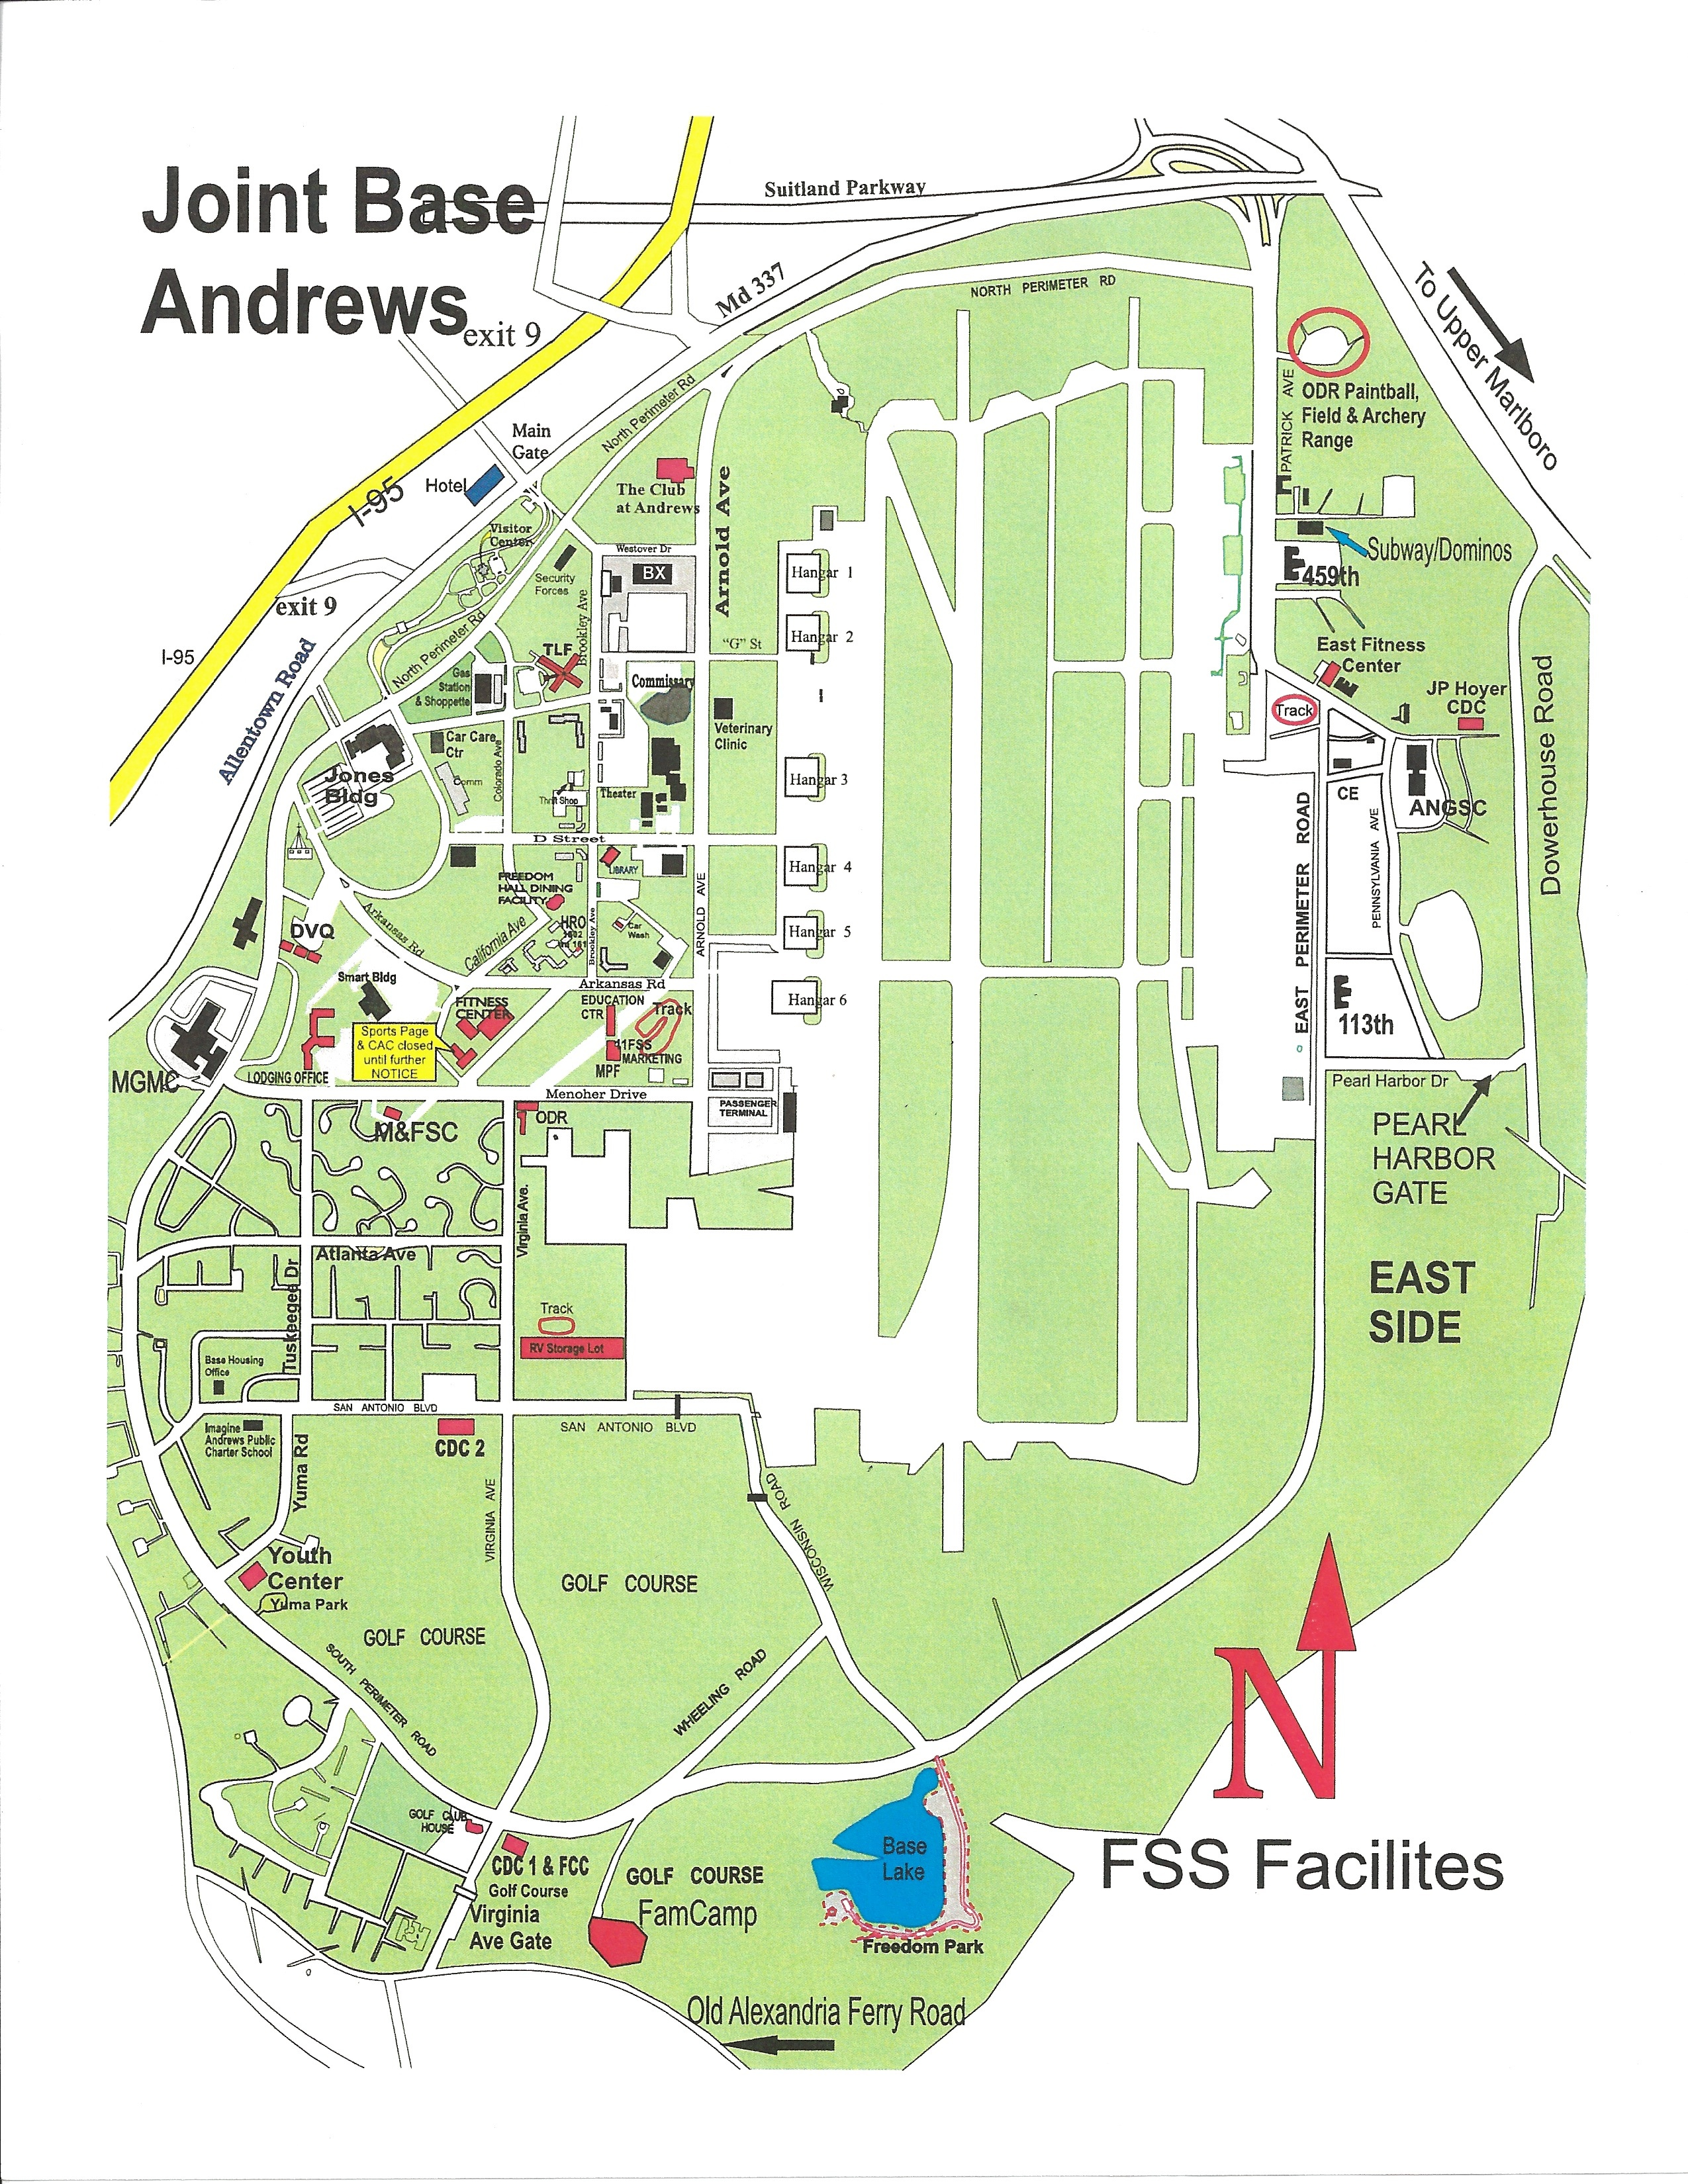 andrews air force base black personals Andrews afb, md - units andrews air force base is home to the 316th wing which is host to more than 45 separate organizations including the 89th airlift wing.